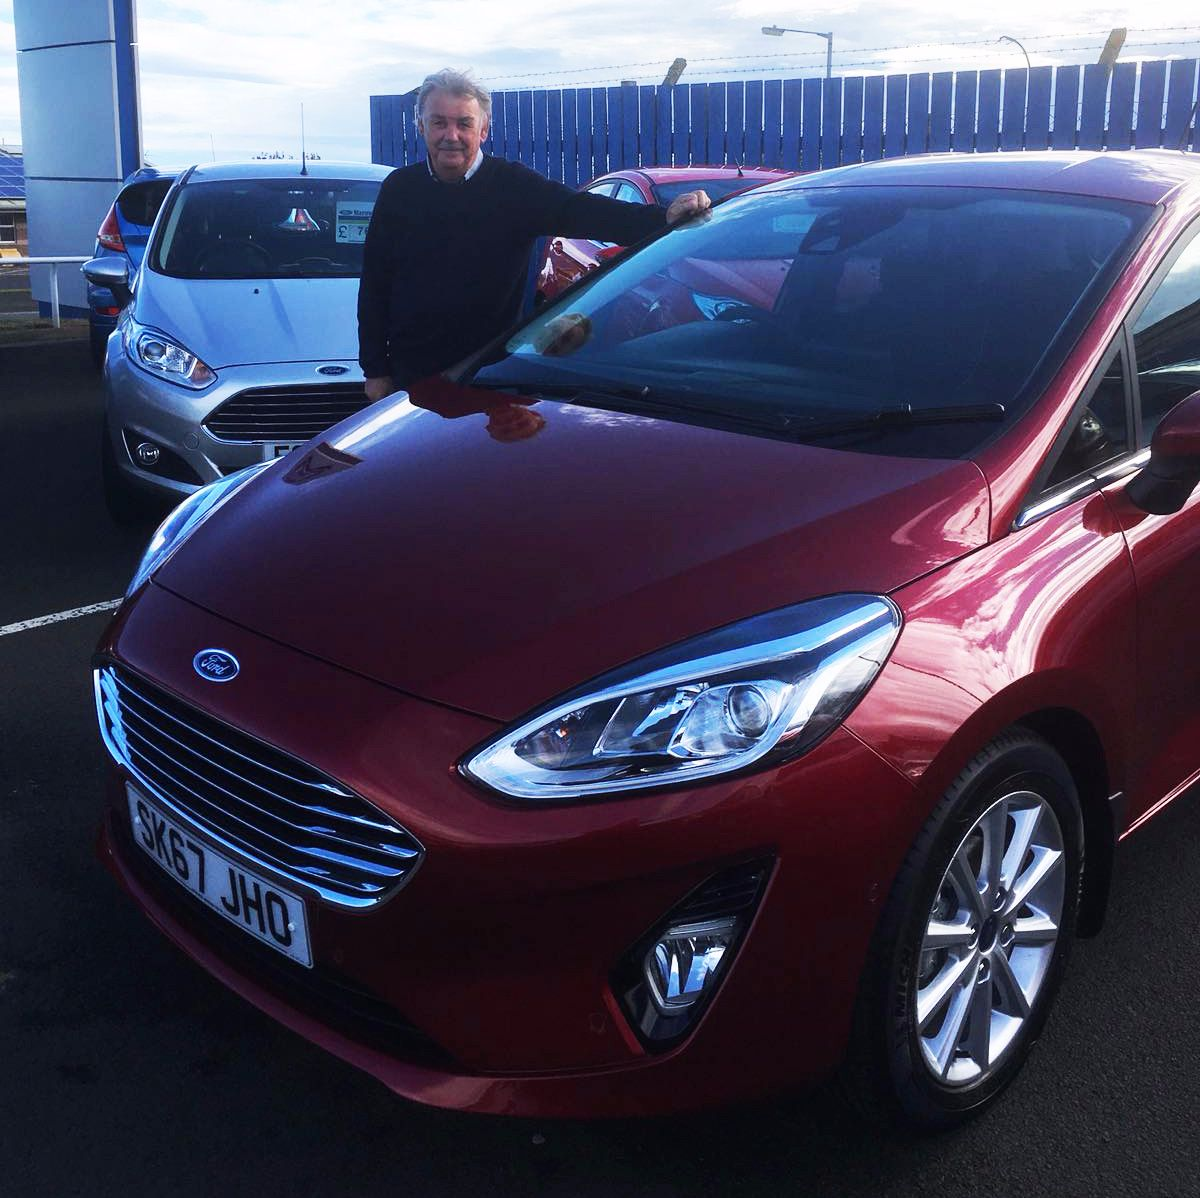 LOYAL CUSTOMER OPTS FOR NEW RUBY RED FIESTA...